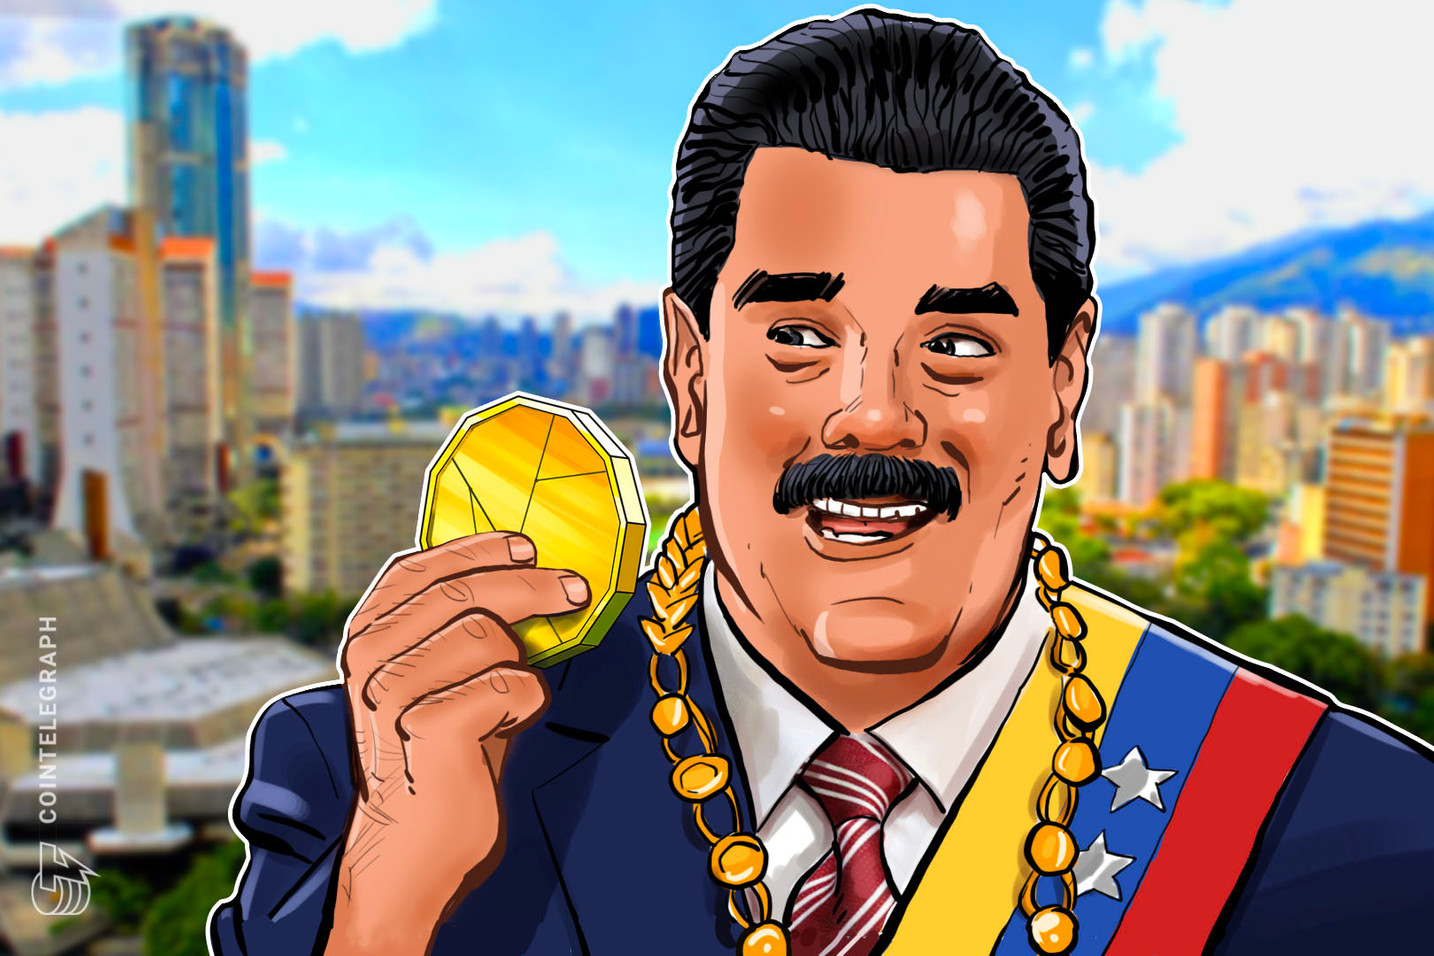 Experts: Venezuela's Petro Is a 'Smokescreen' Backed by Centralized Debt-Crippled Entity